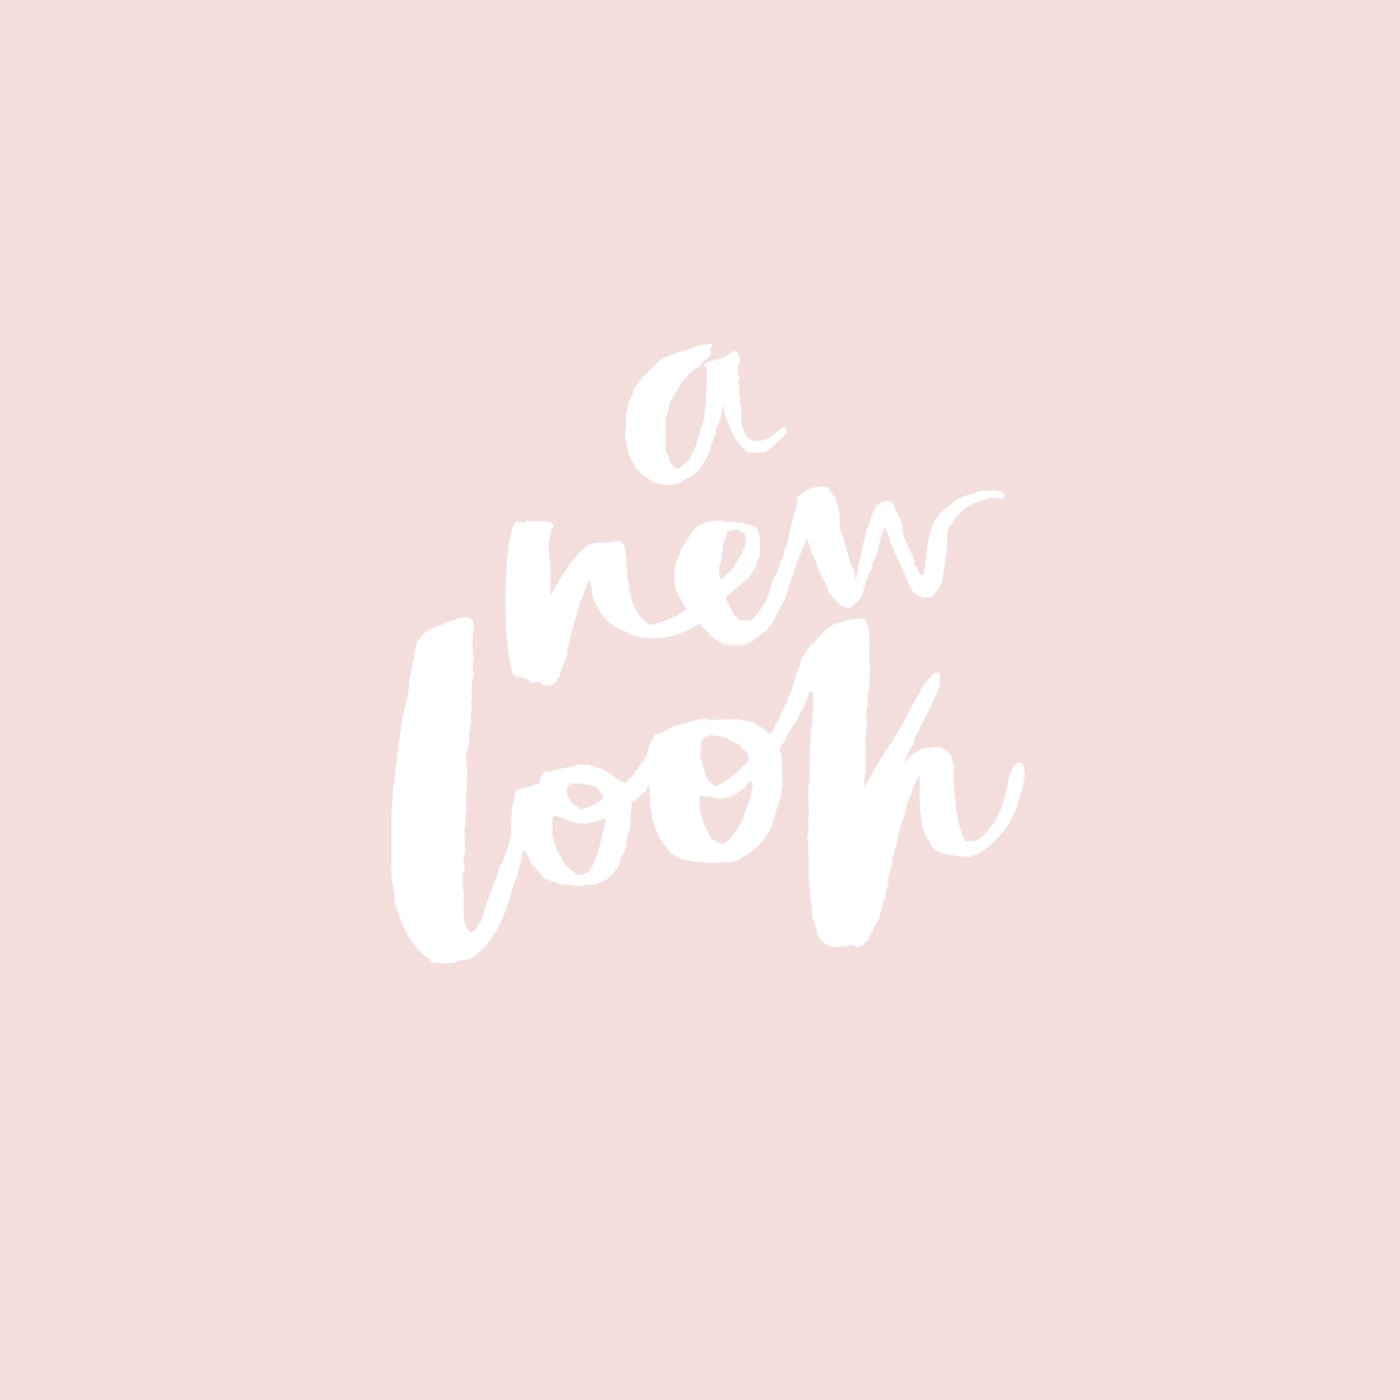 a new look for the lovely drawer | brush lettering